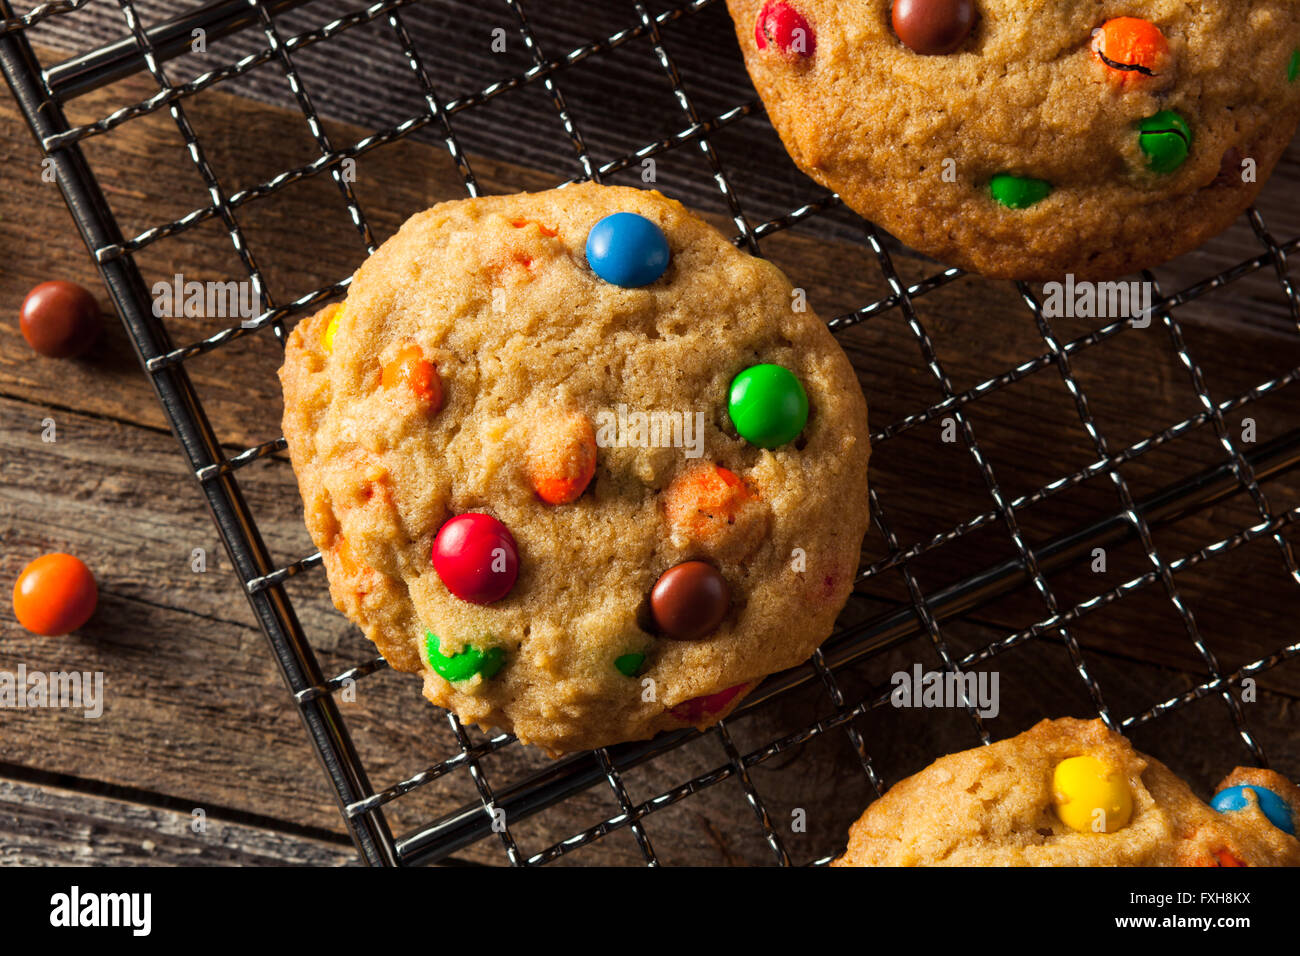 Homemade Candy Coated Chocolate Chip Cookies Ready to Eat Stock Photo